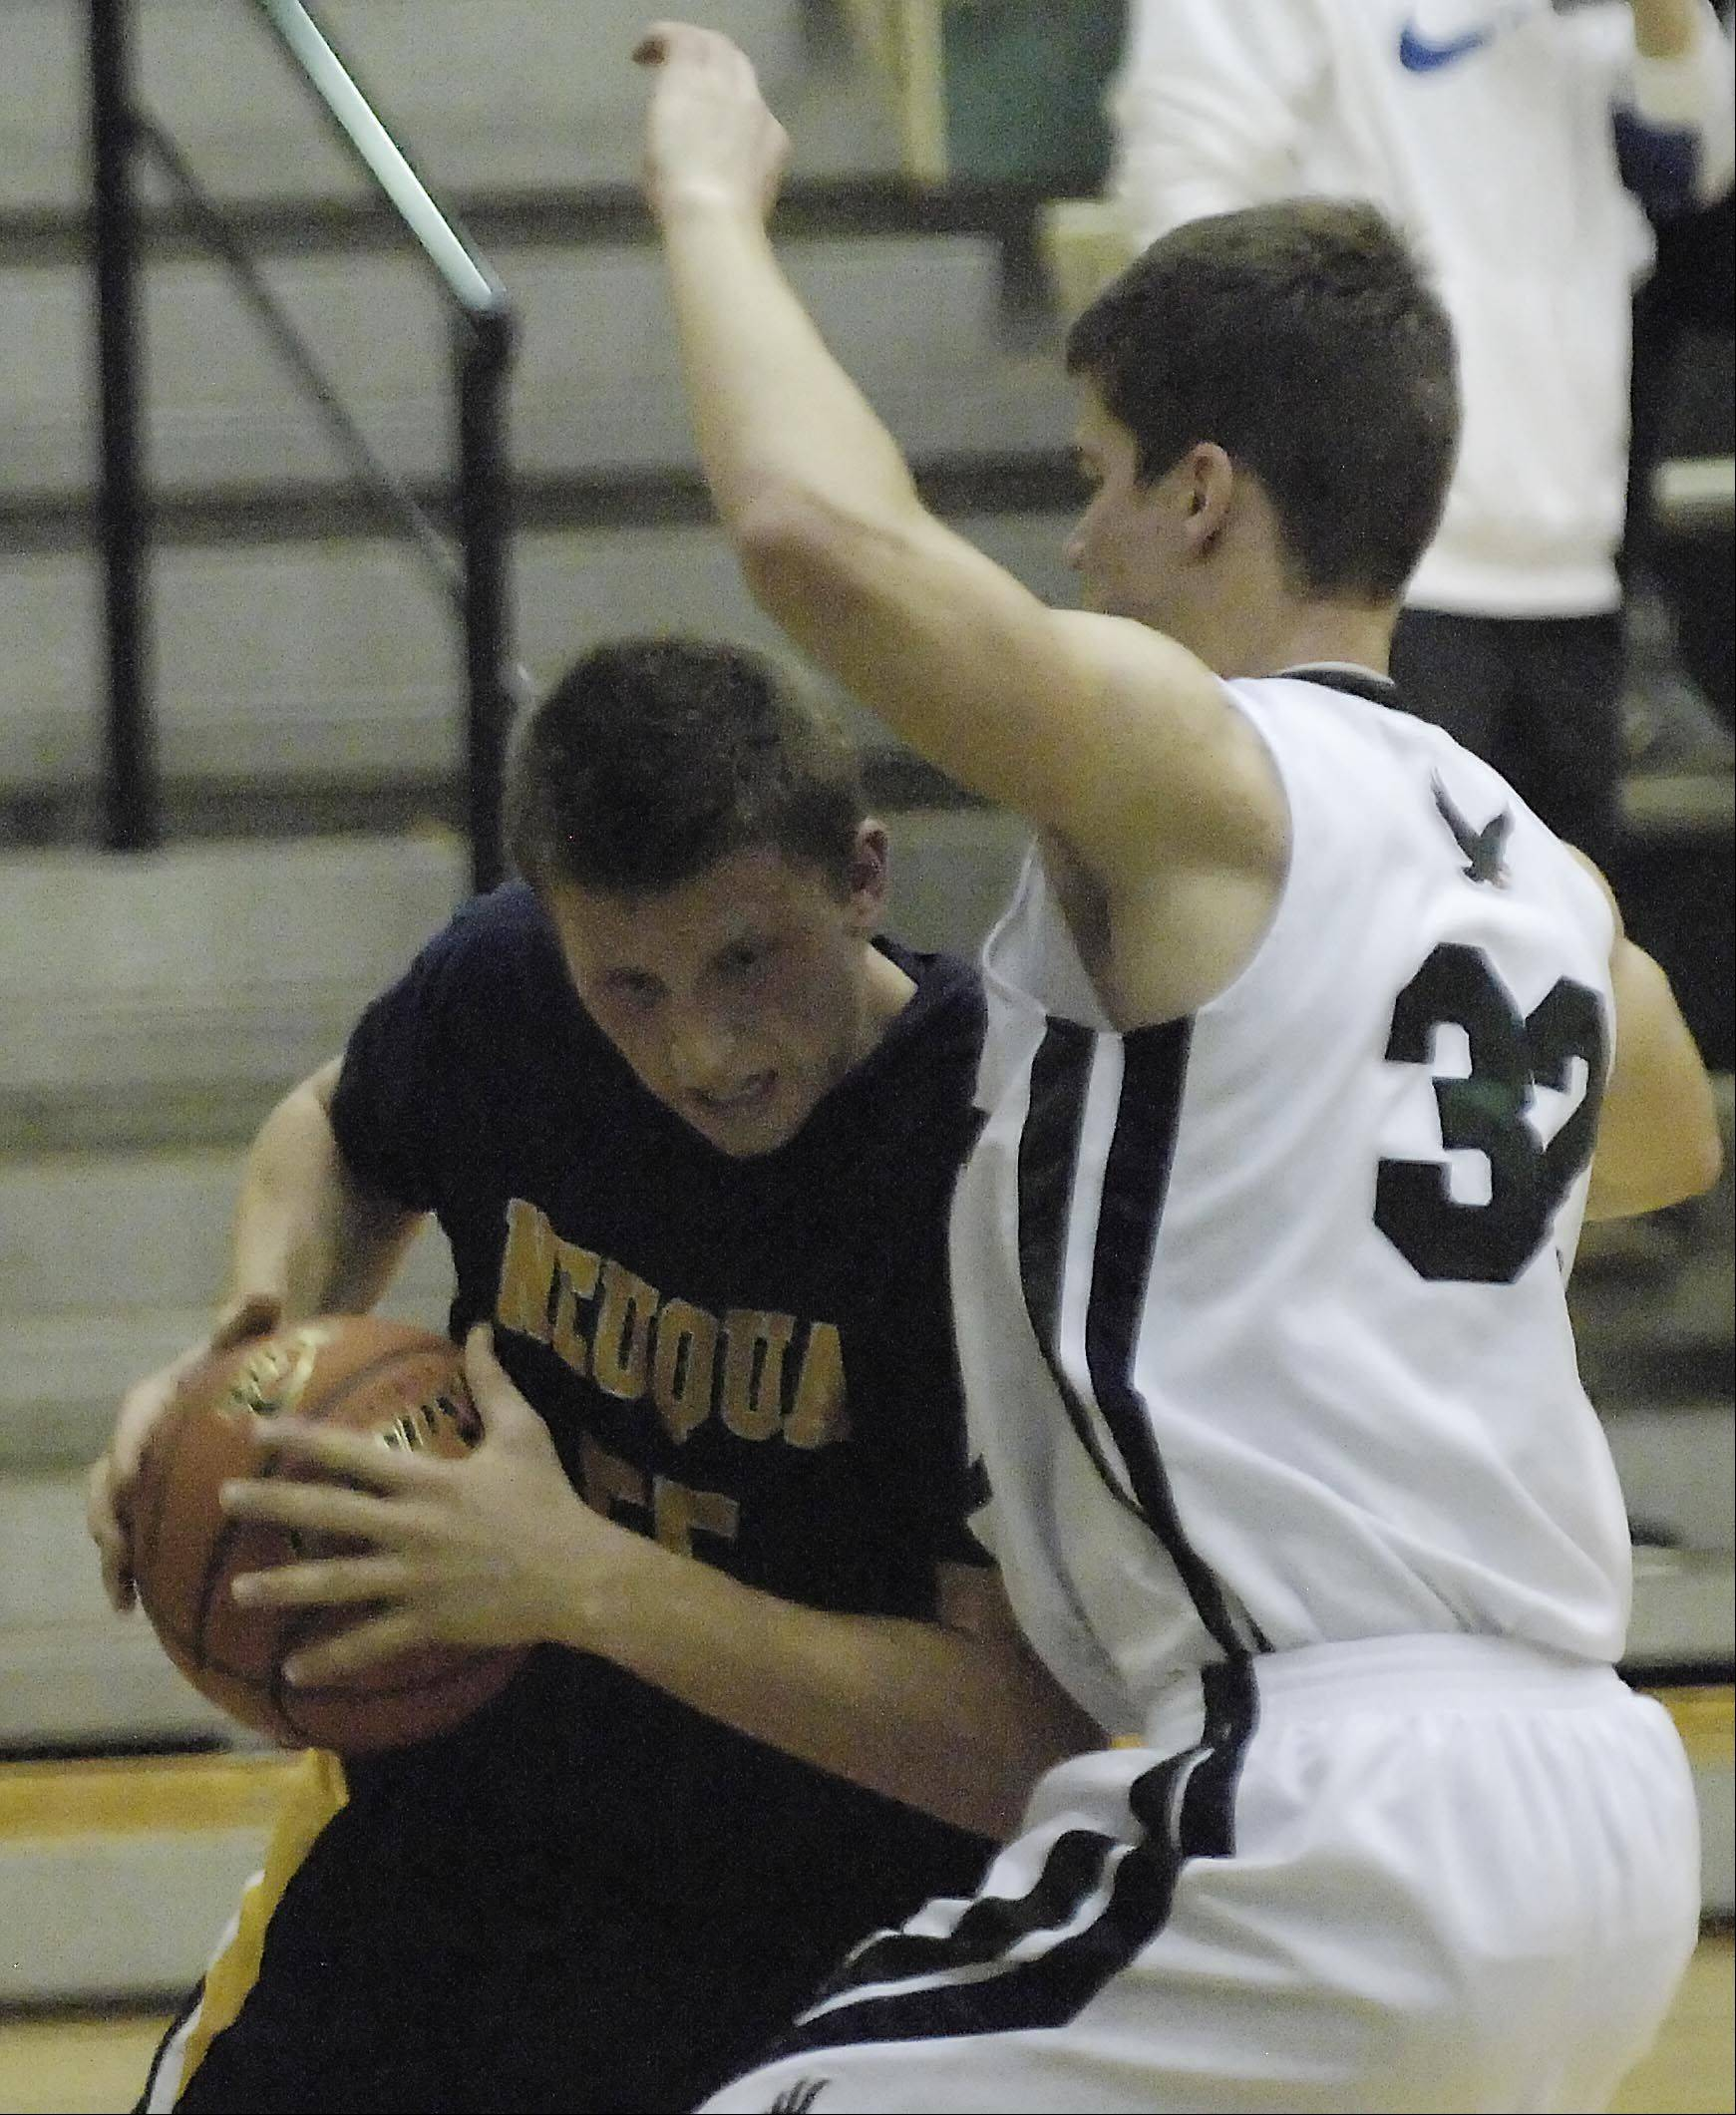 Images from the Neuqua Valley vs. Bartlett boys basketball game Thursday, December 13, 2012.